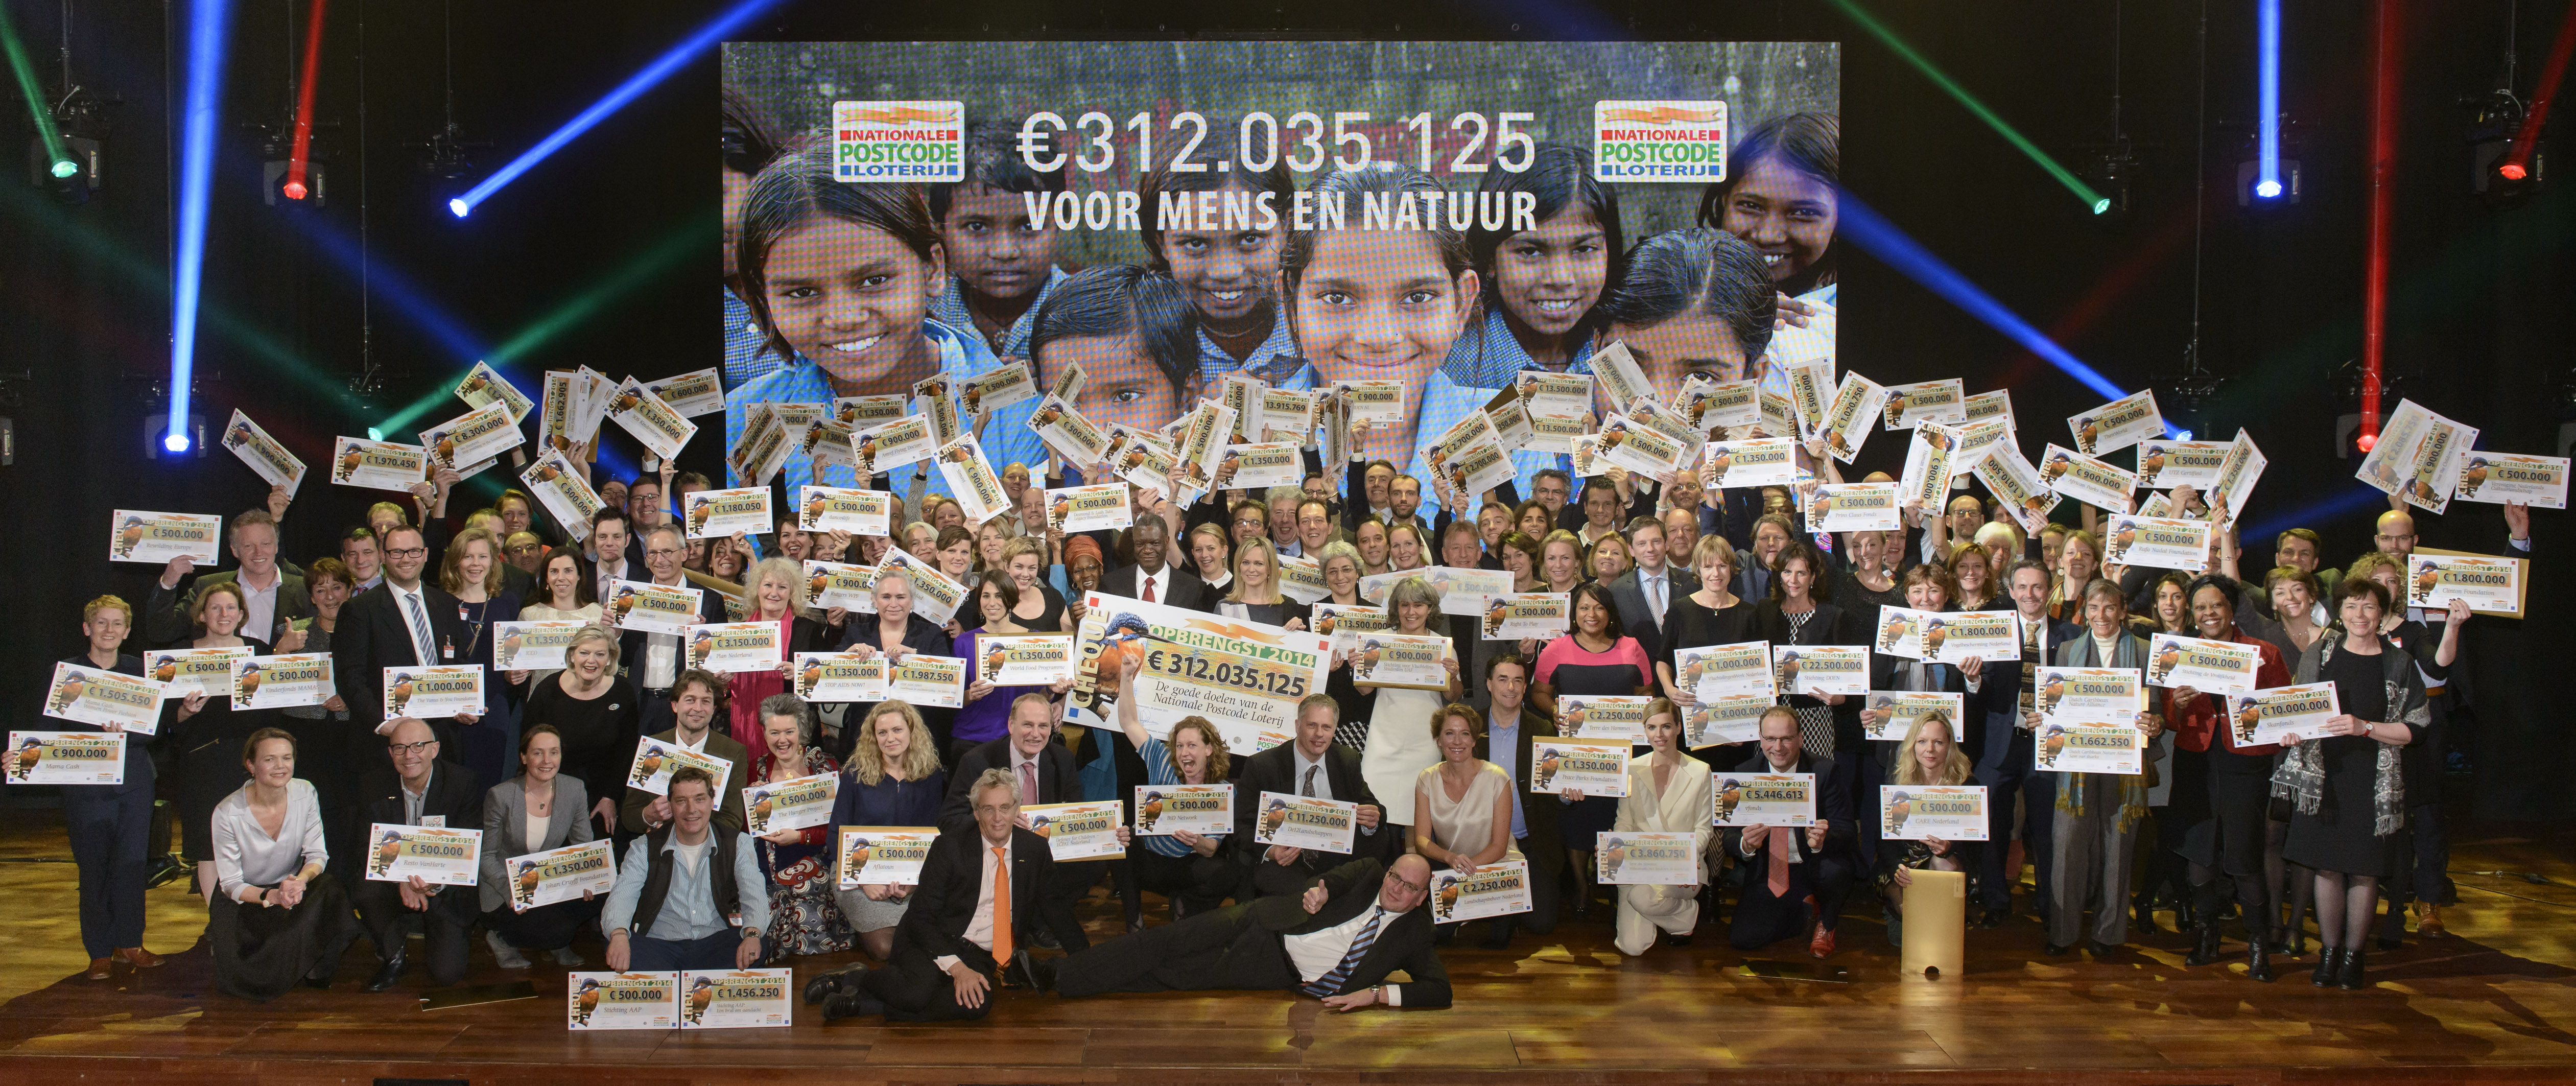 Dutch Postcode Lottery Awards Grant to Theirworld for Work with Syrian Child Refugees